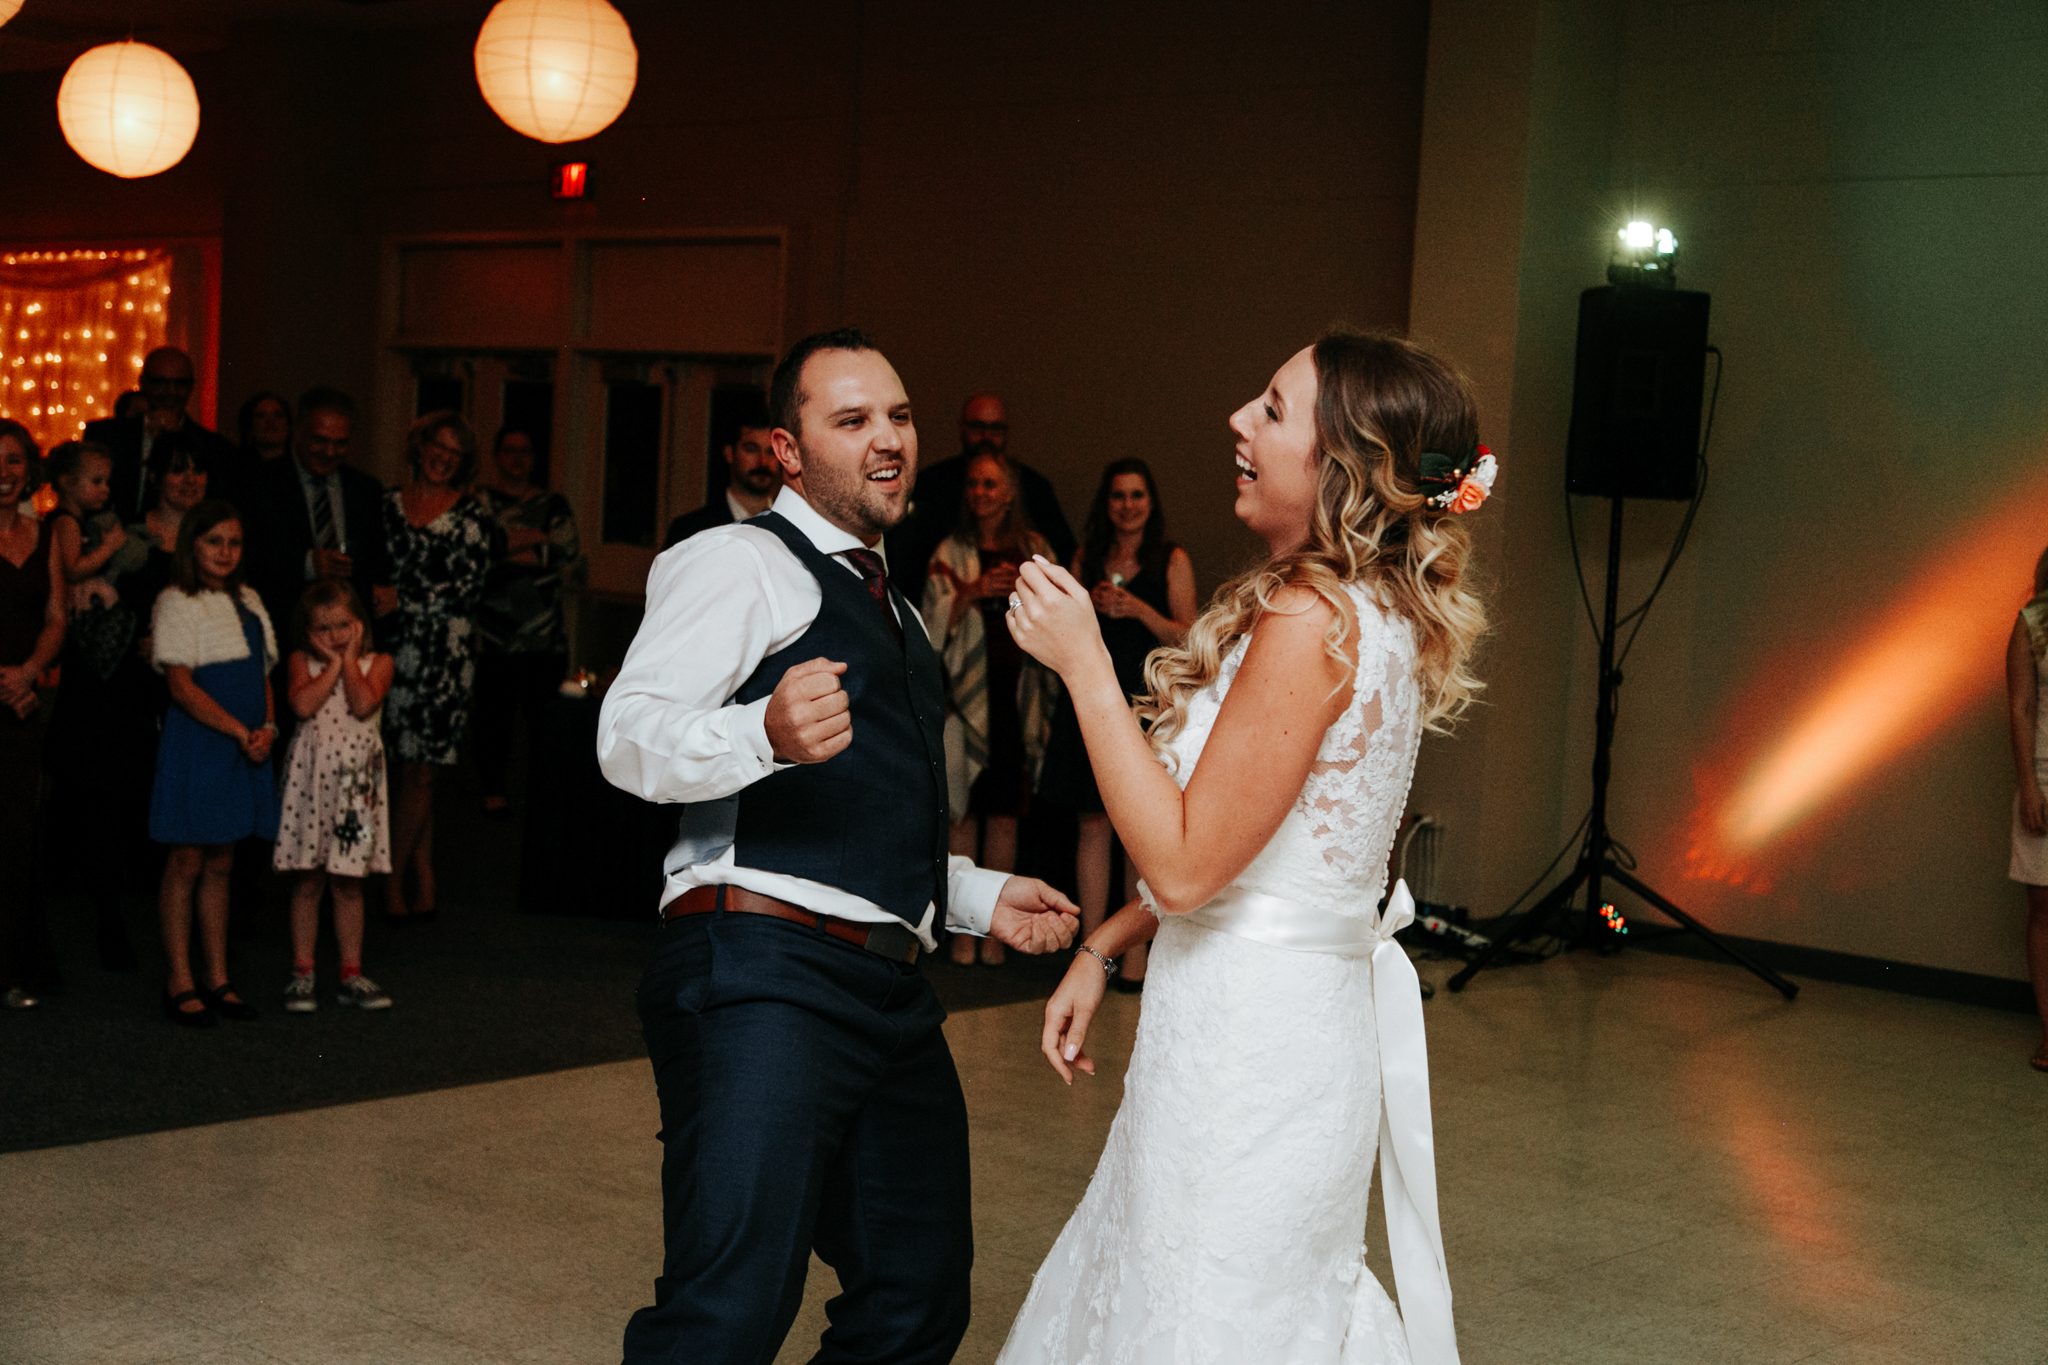 lethbridge-photographer-love-and-be-loved-photography-rocky-mountain-turf-club-reception-katie-kelli-wedding-picture-image-photo-423.jpg